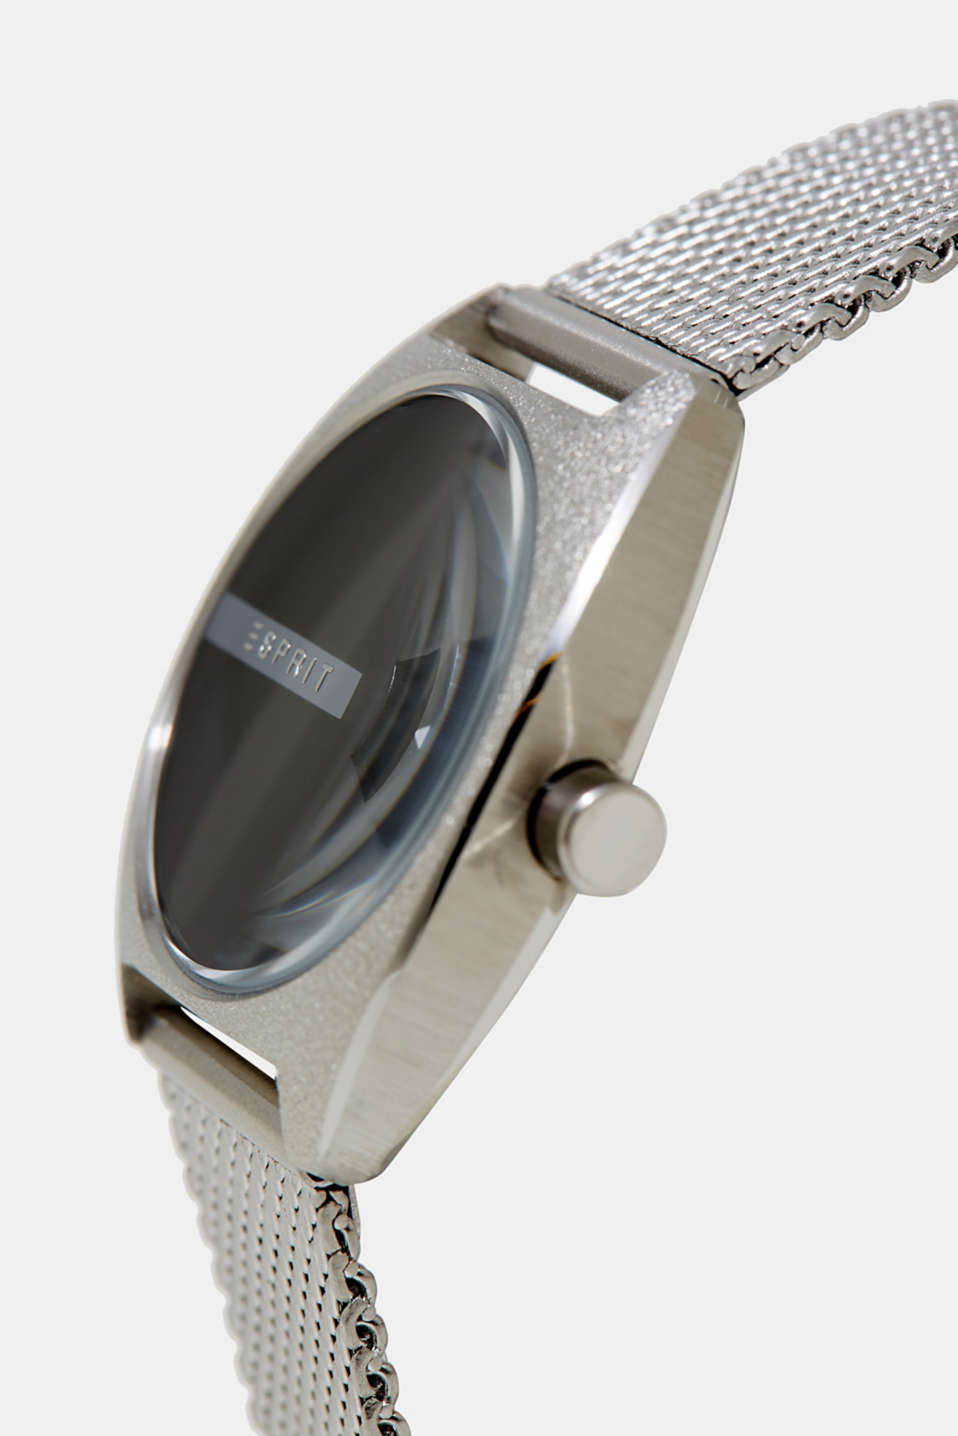 Steel digital watch with a Milanese strap